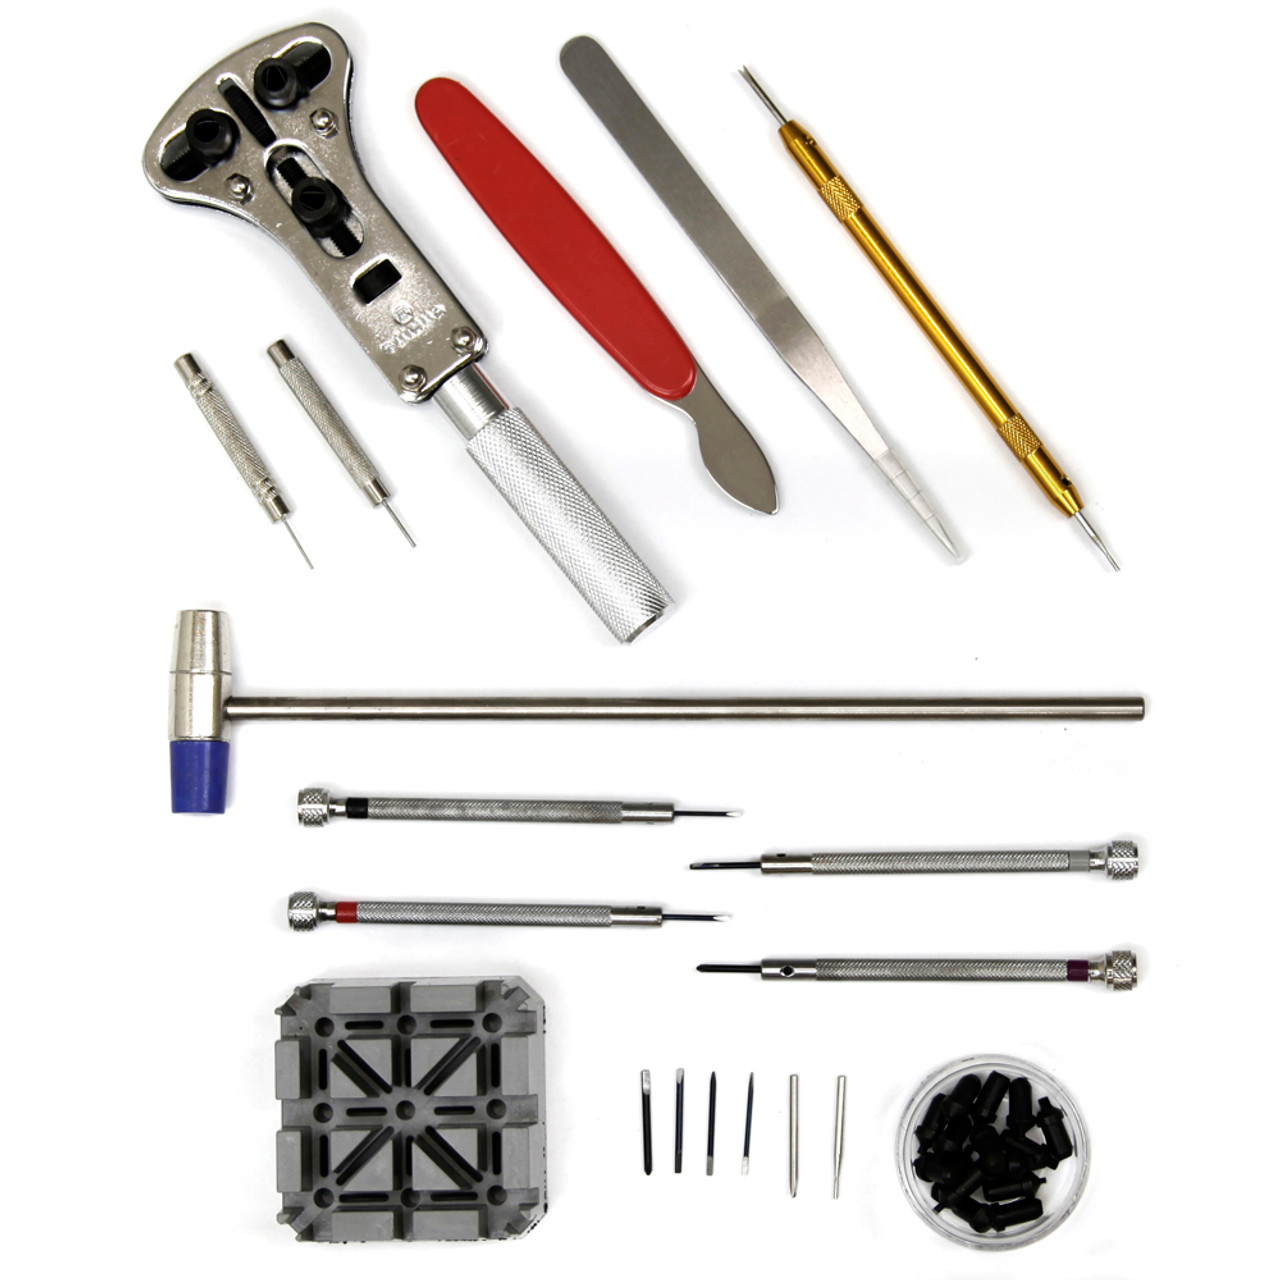 Watch Battery Changing Kit -TSA9007 - Main